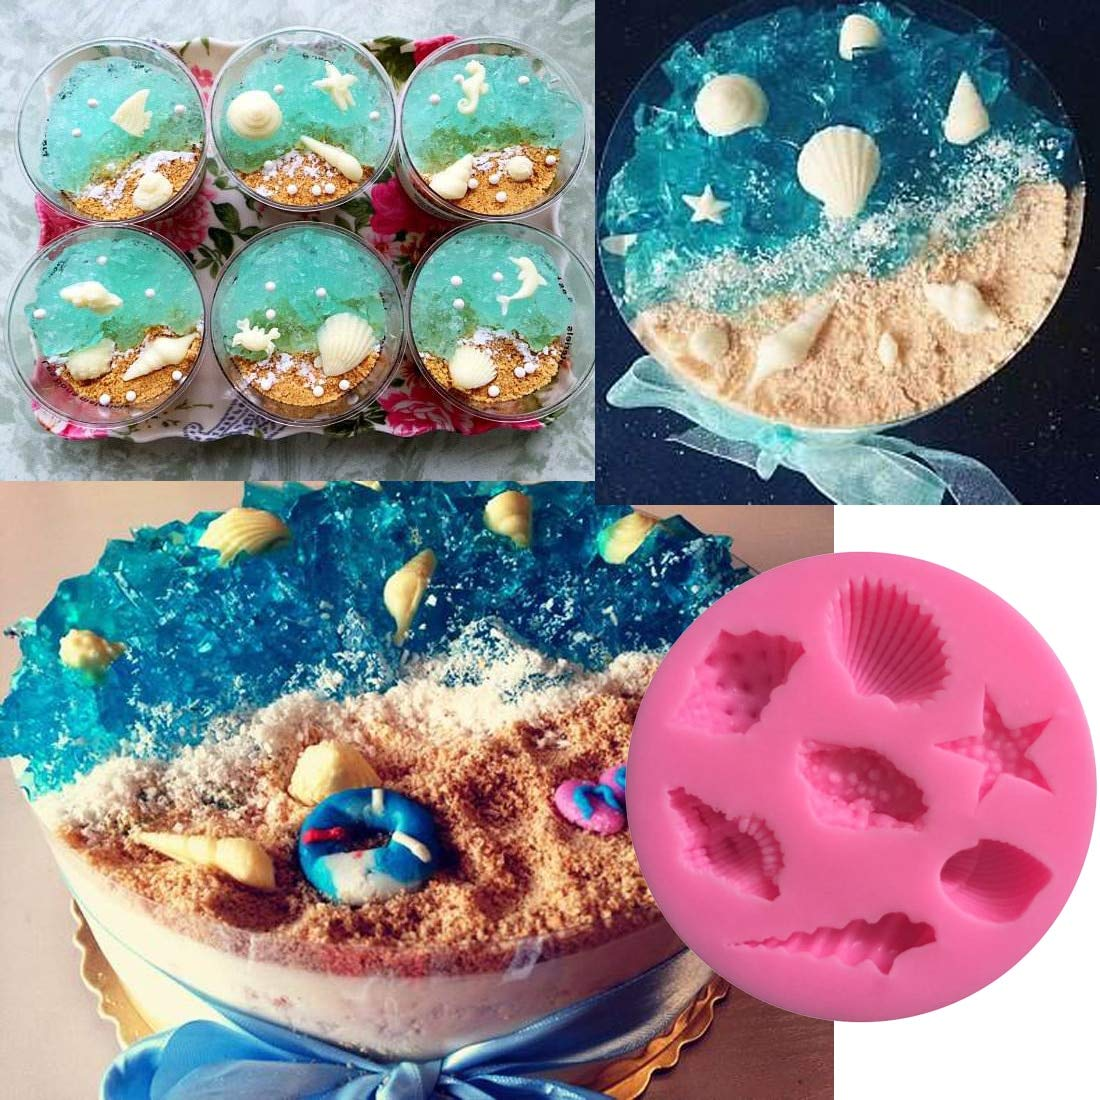 Cake Molds - Useful Sea Shell Starfish Conch Shape Cake Chocolate Silicon Mold Fondant Decoration - Beginners Book Decorating Supplies Moldes Boss Tools ...